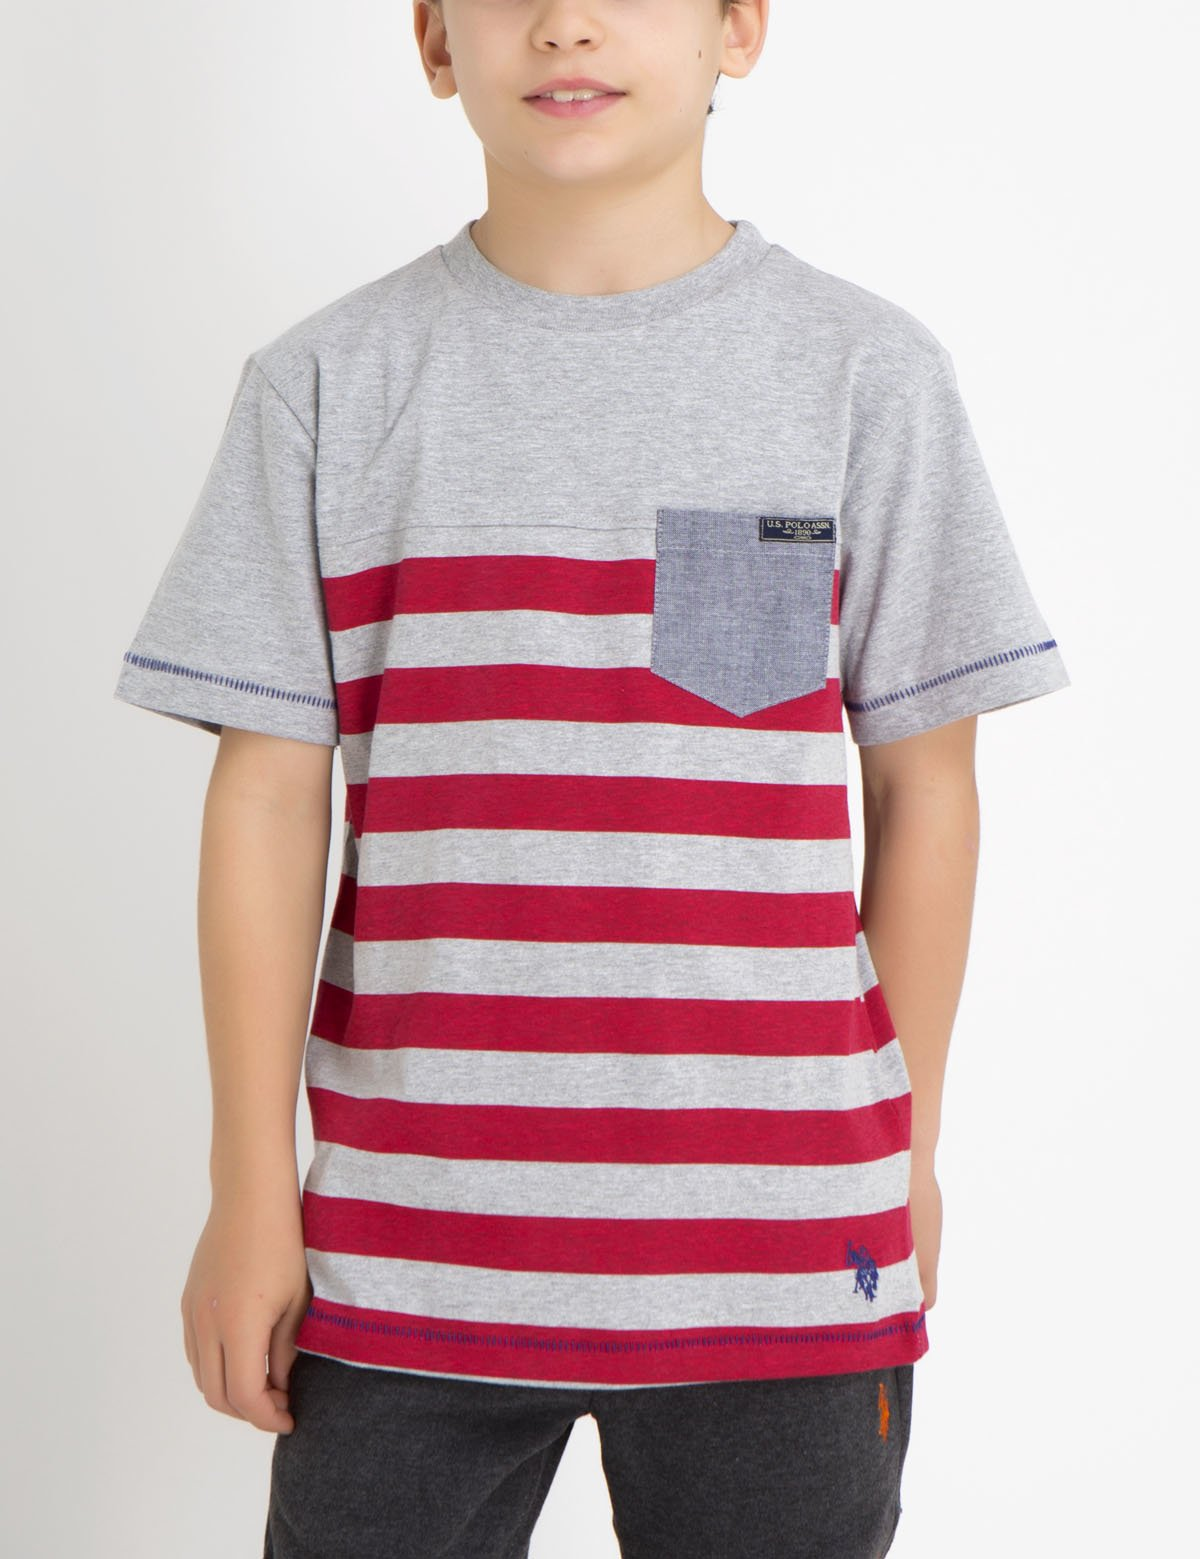 BOYS STRIPED T-SHIRT